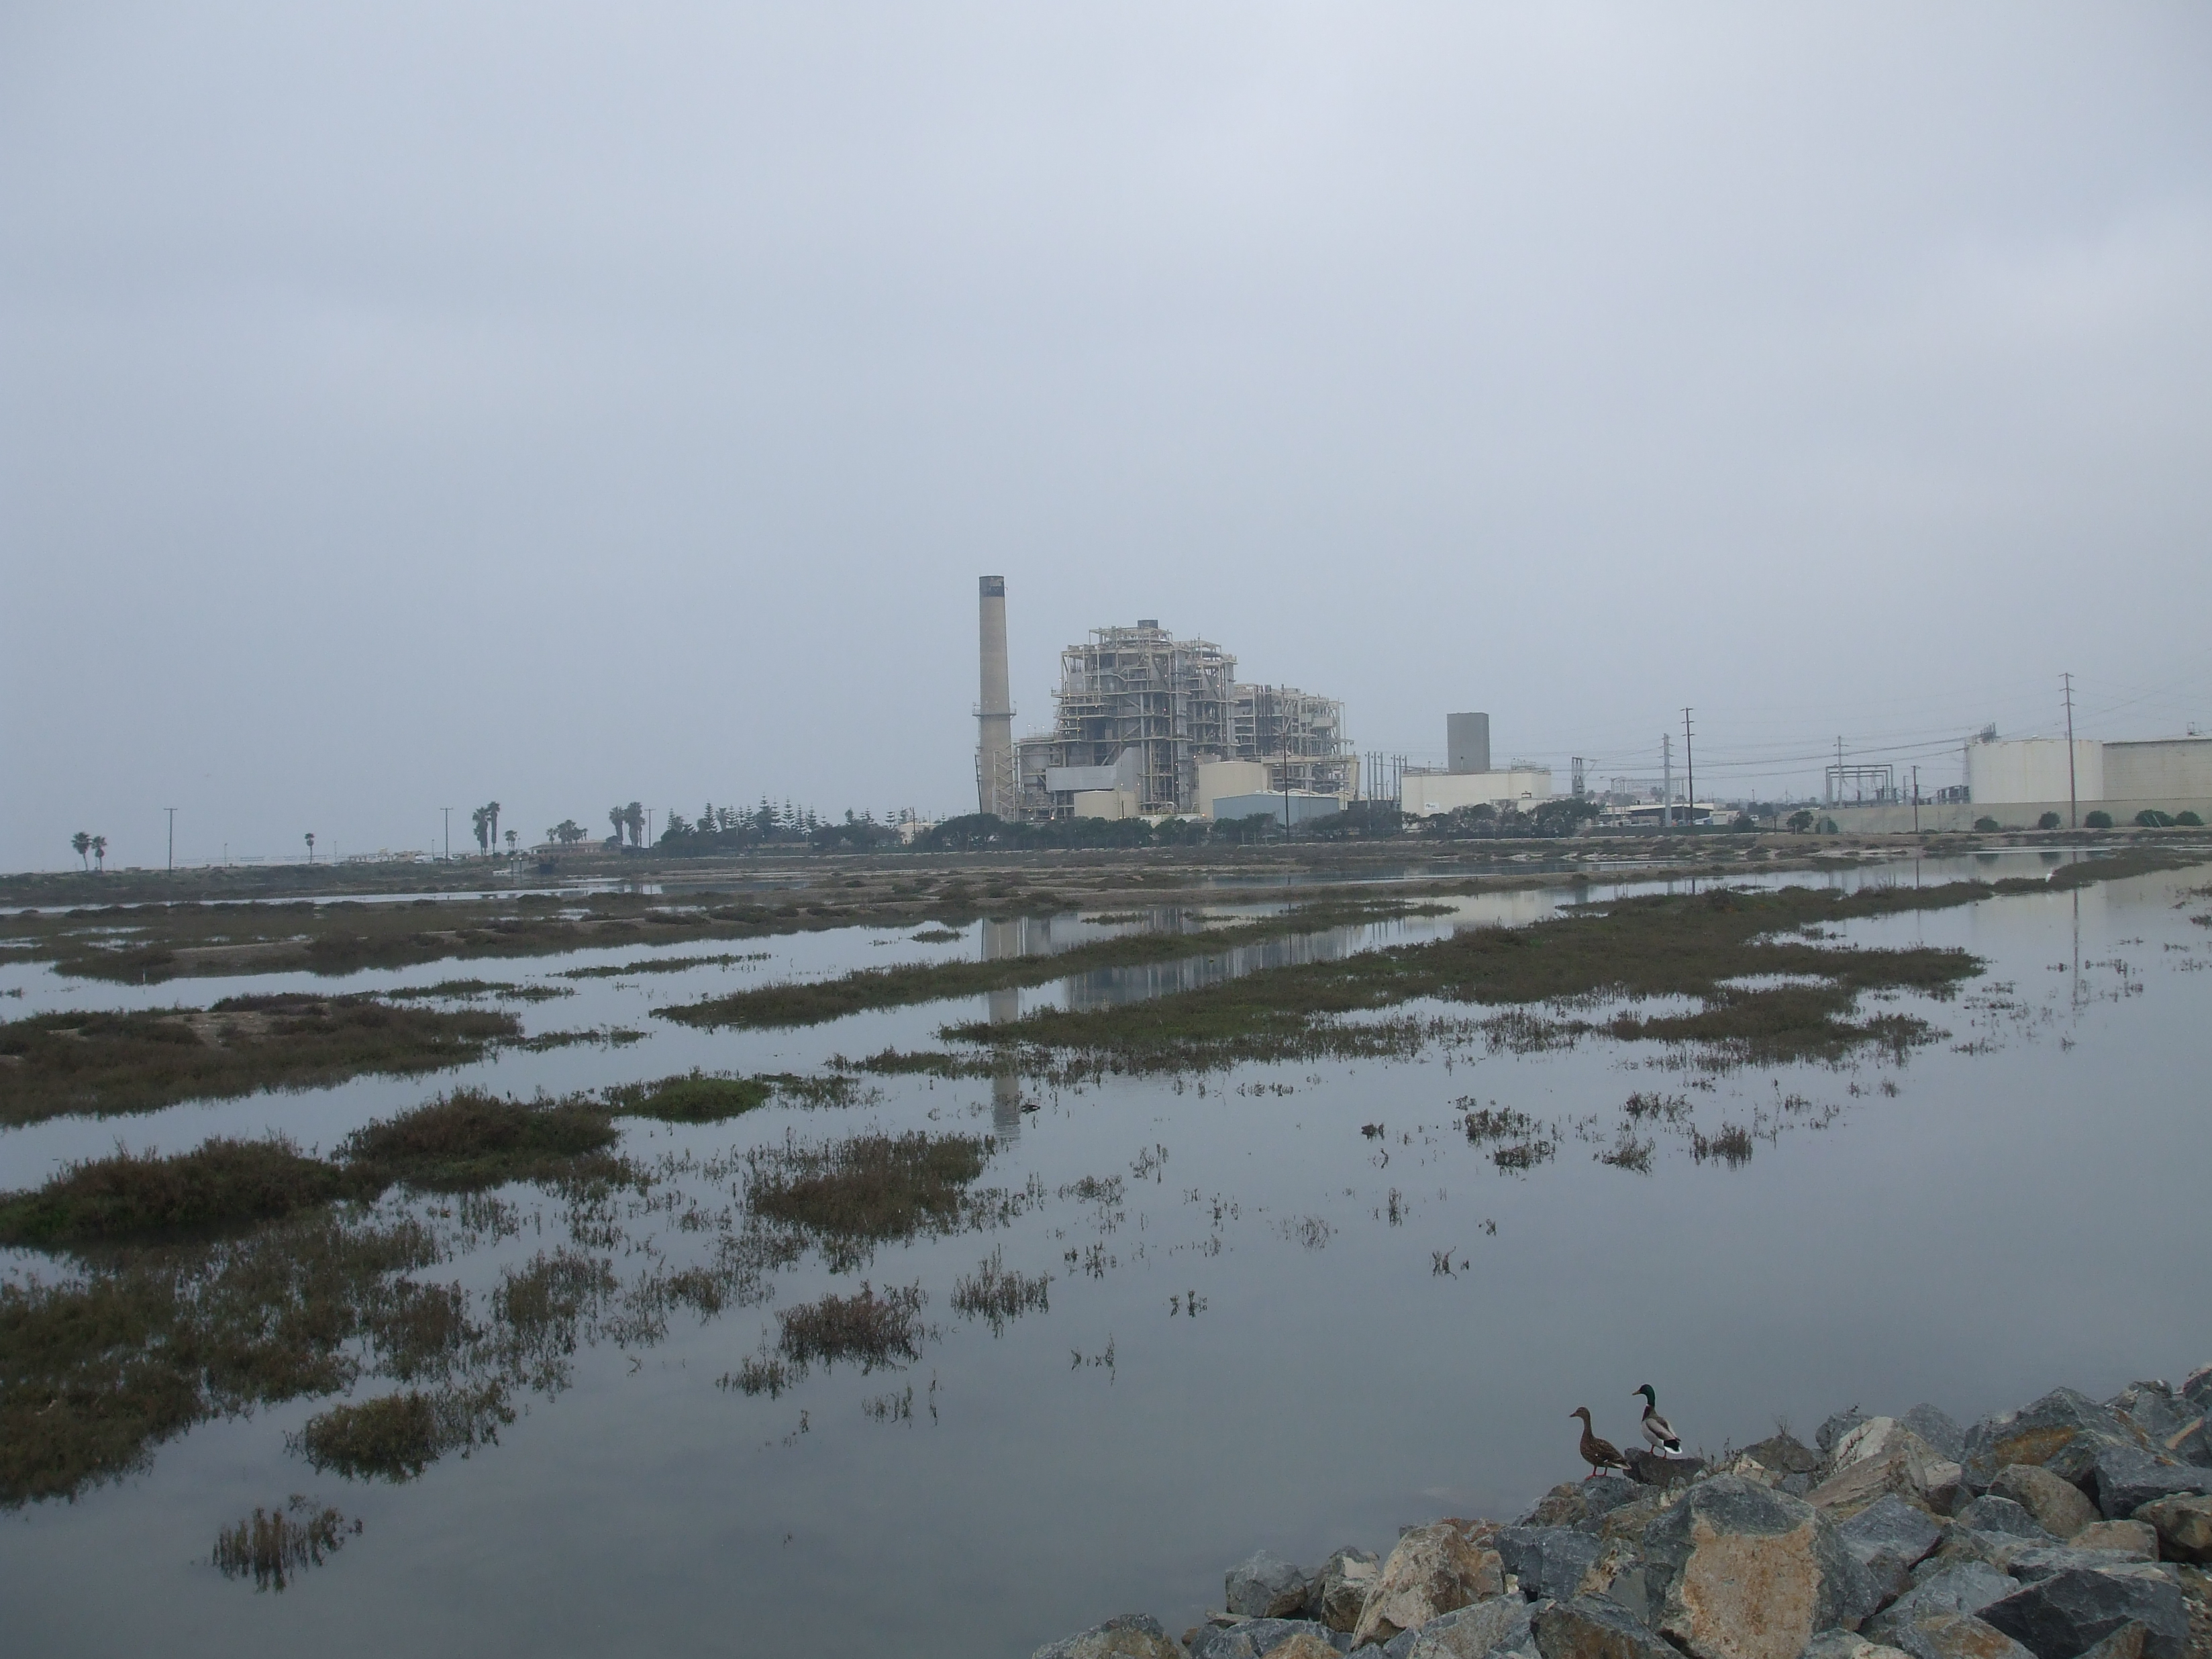 King_Tides_Poseidon_Desalination_Huntington_Beach1.JPG